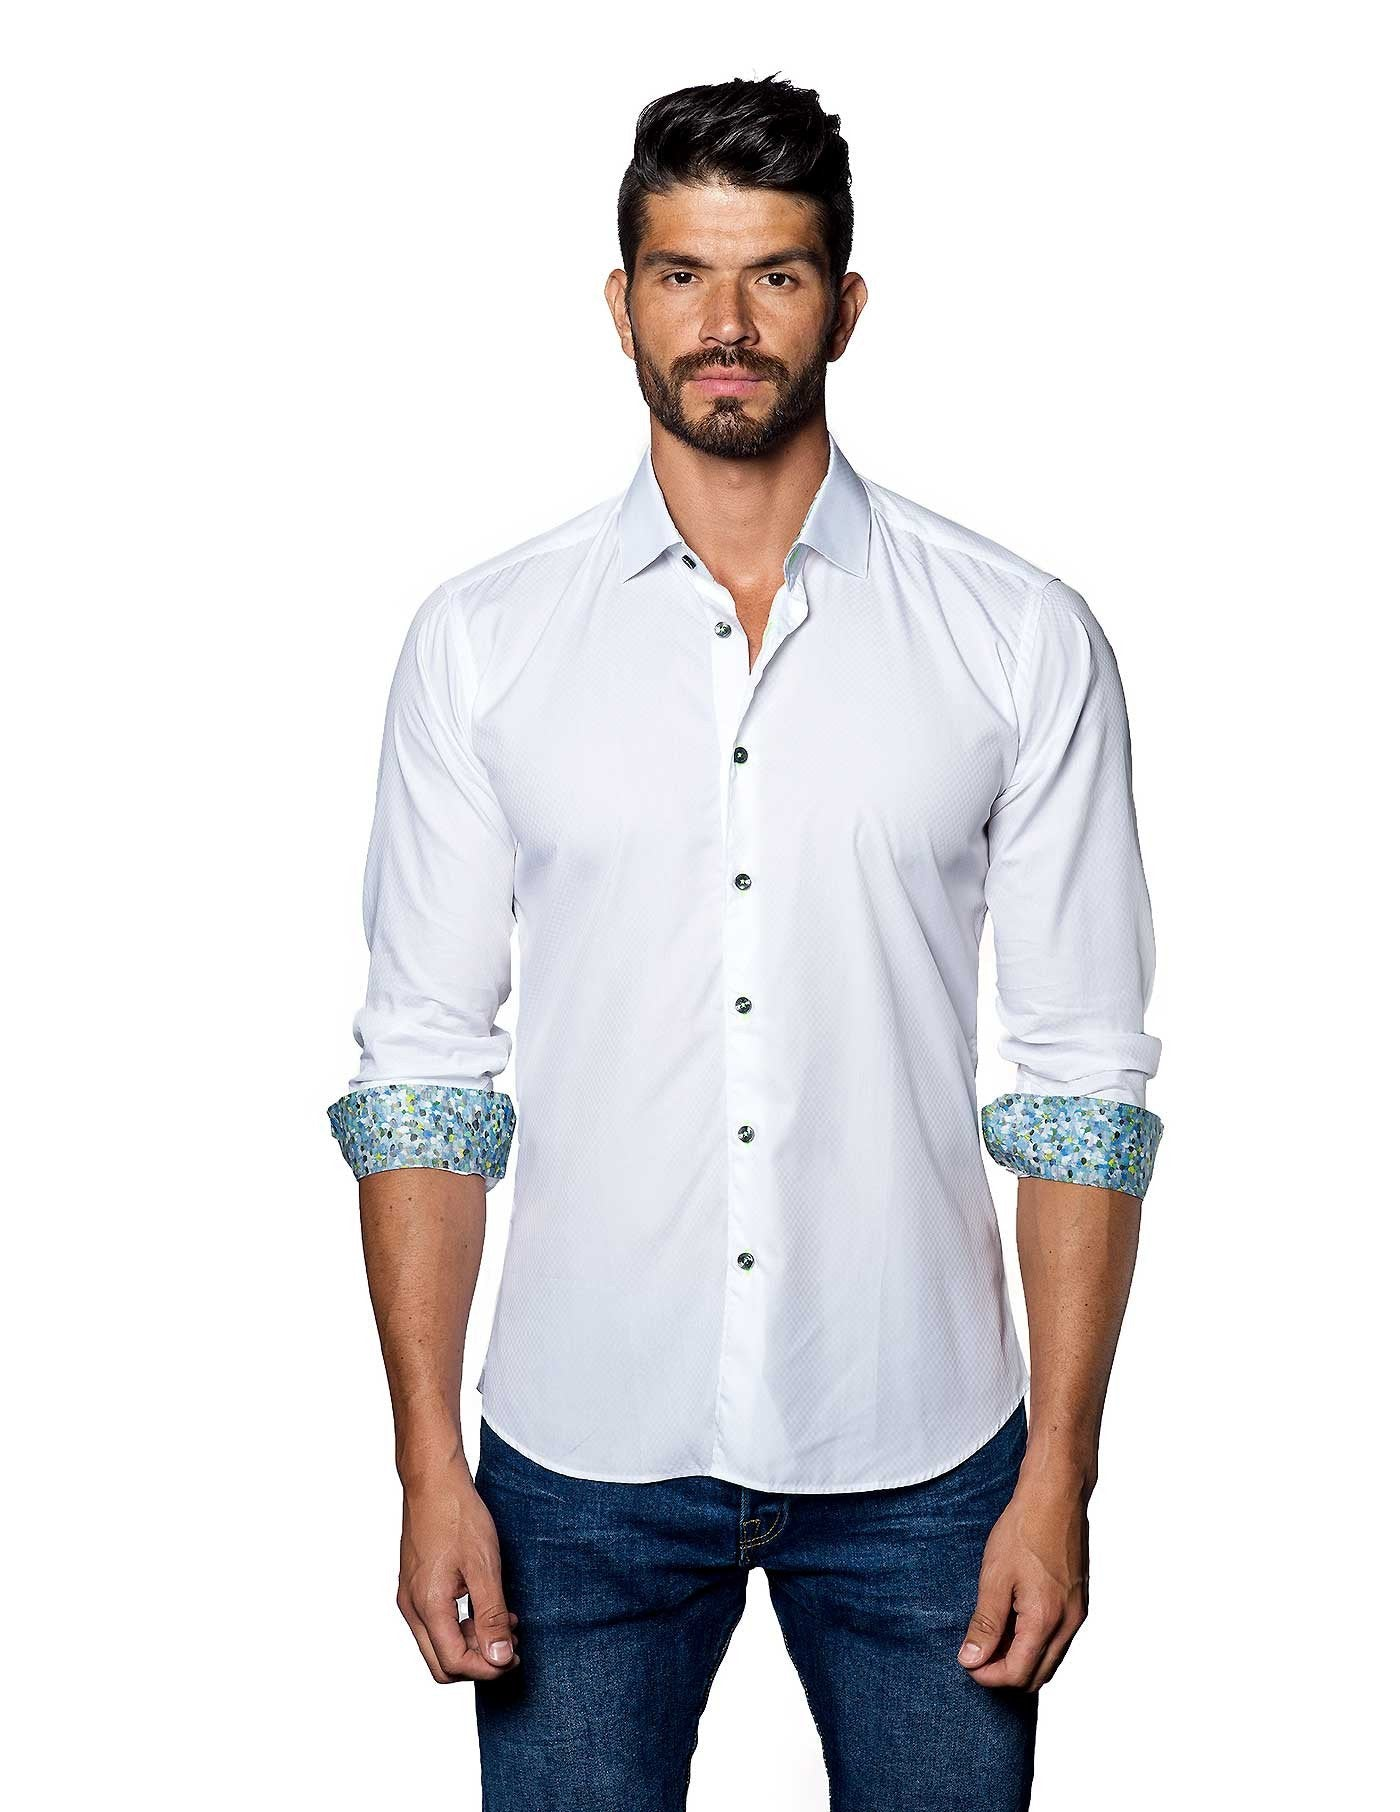 White Solid Damier Jacquard Shirt for Men - front T-2050 - Jared Lang